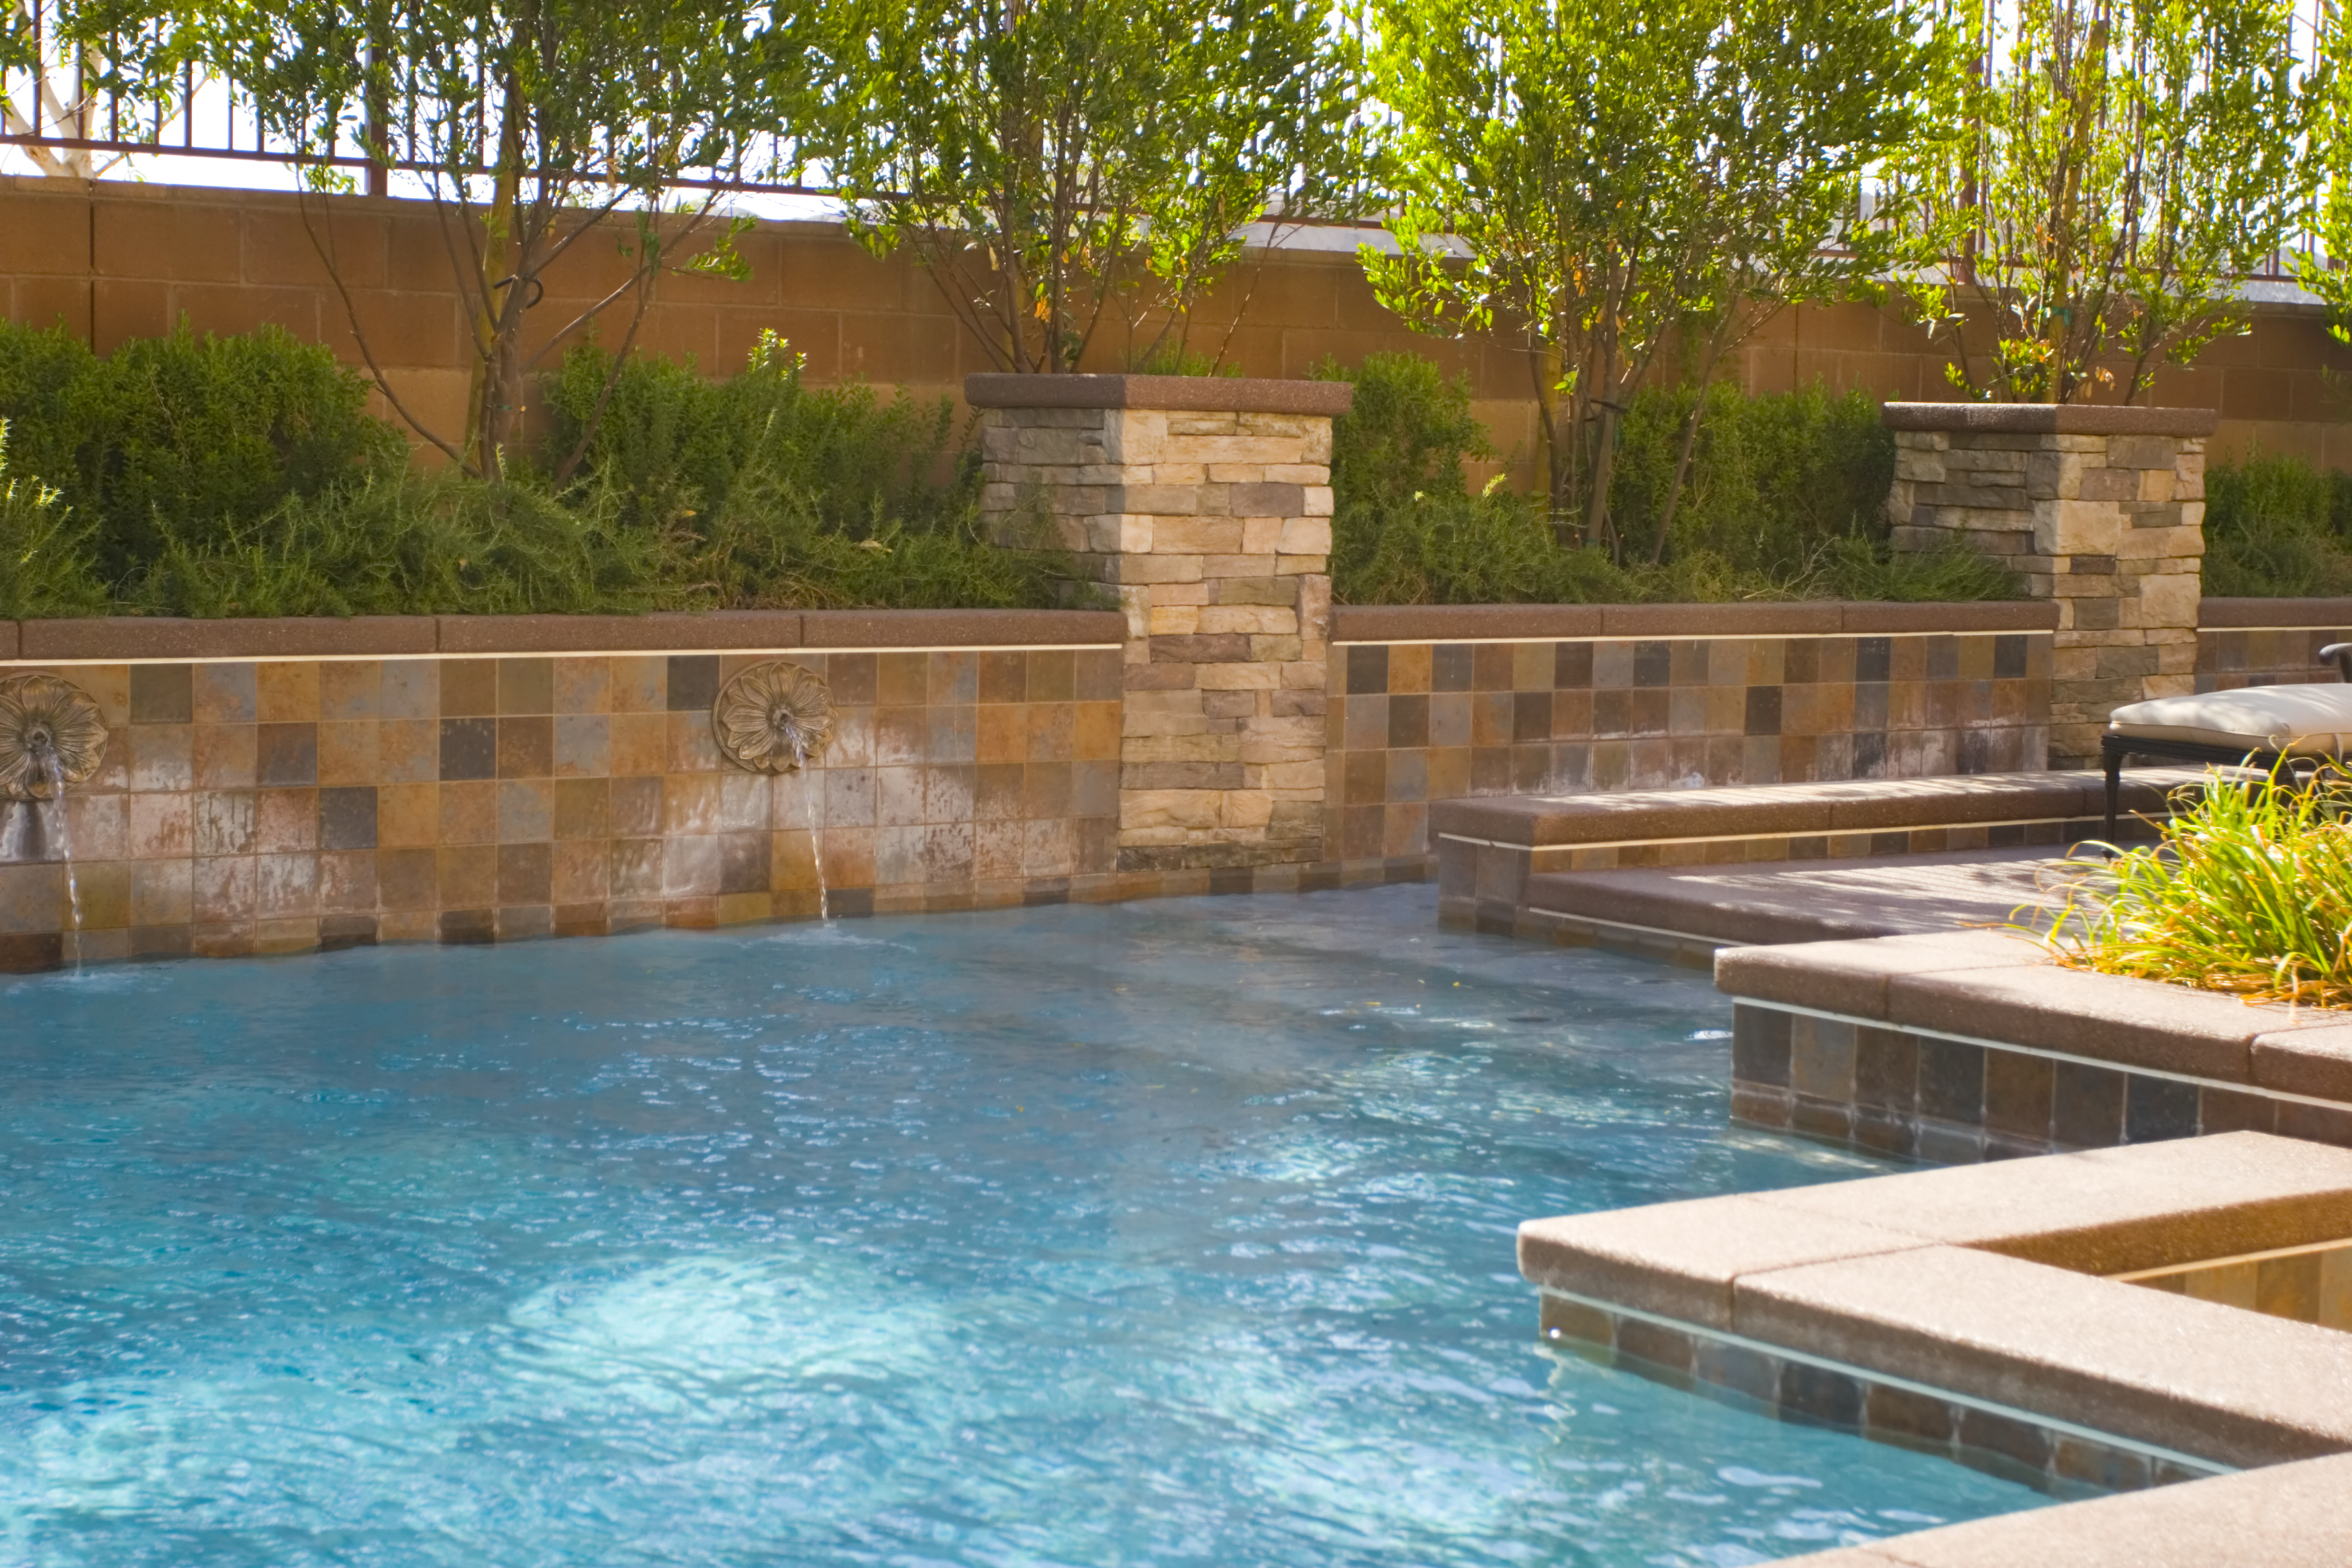 Pool Remodeling Arizona